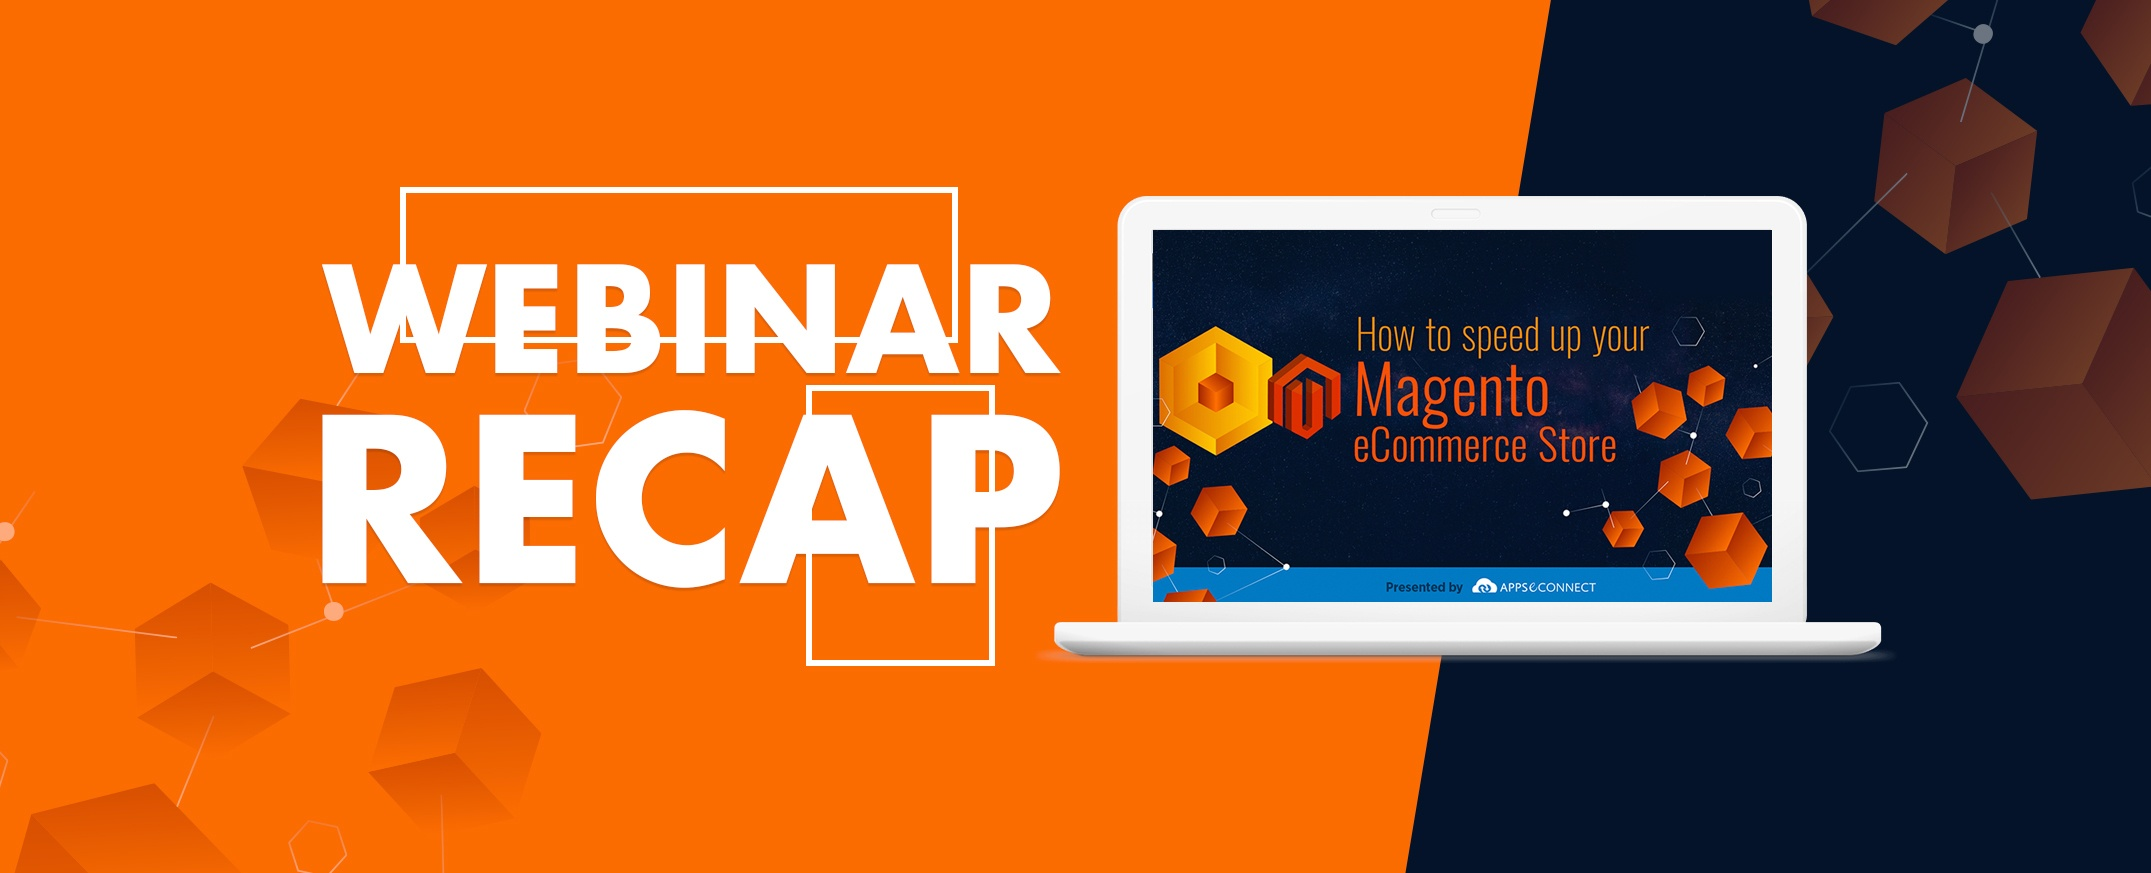 WEBINAR-RECAP-Speed-up-Magento-Store